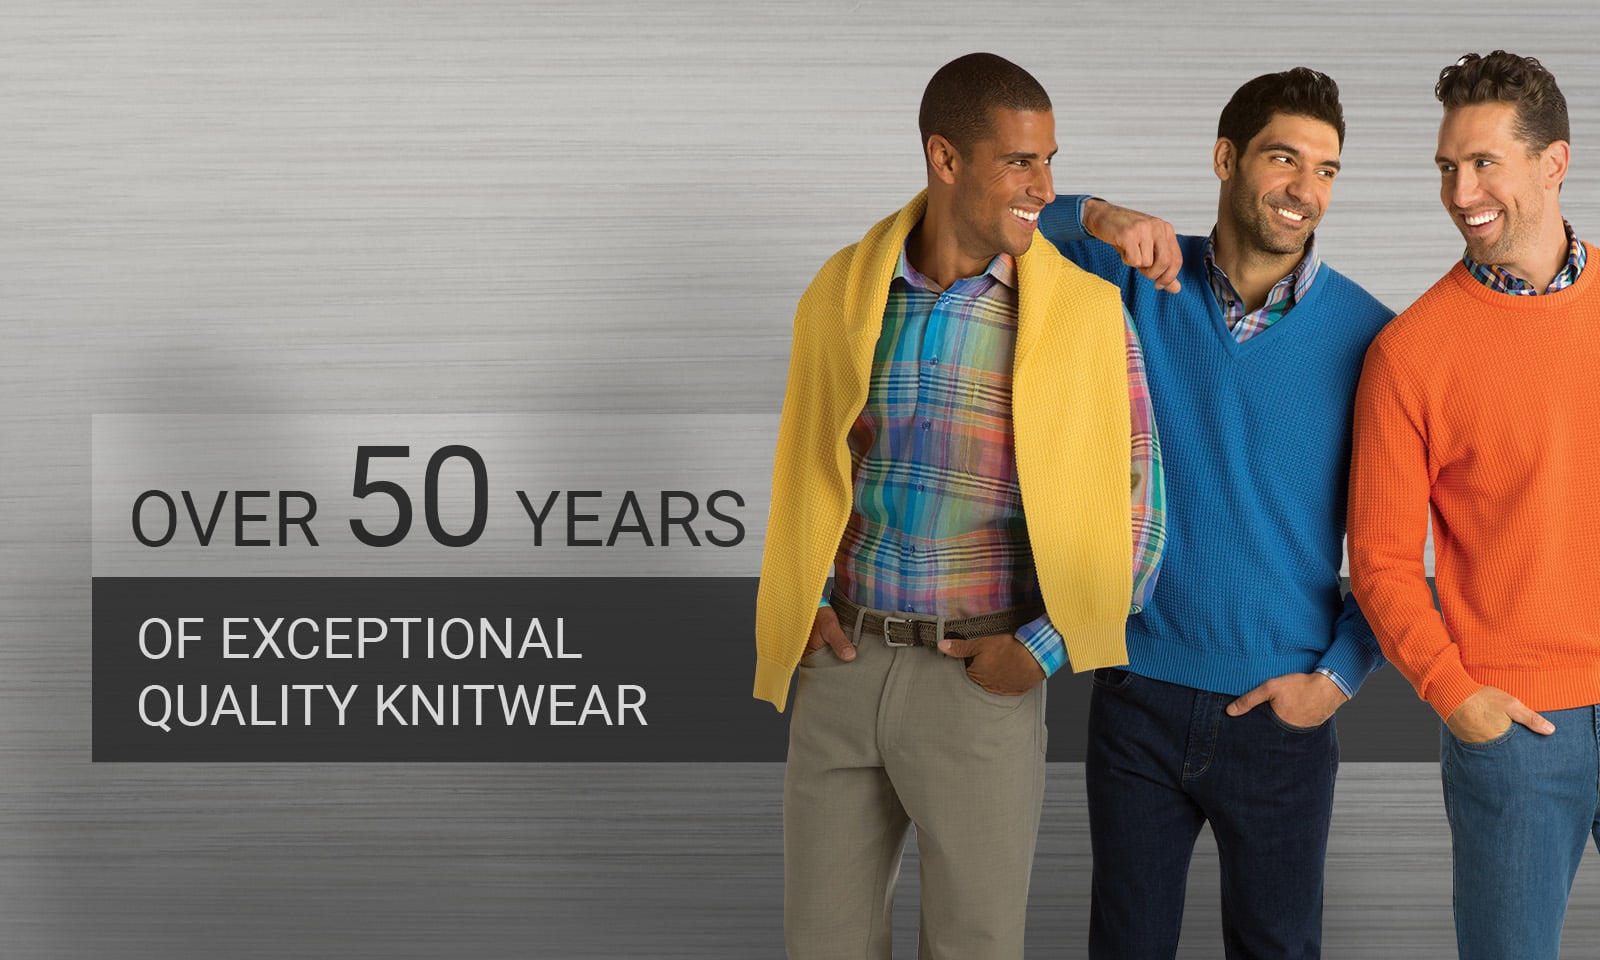 Over 50 Years of Exceptional Quality